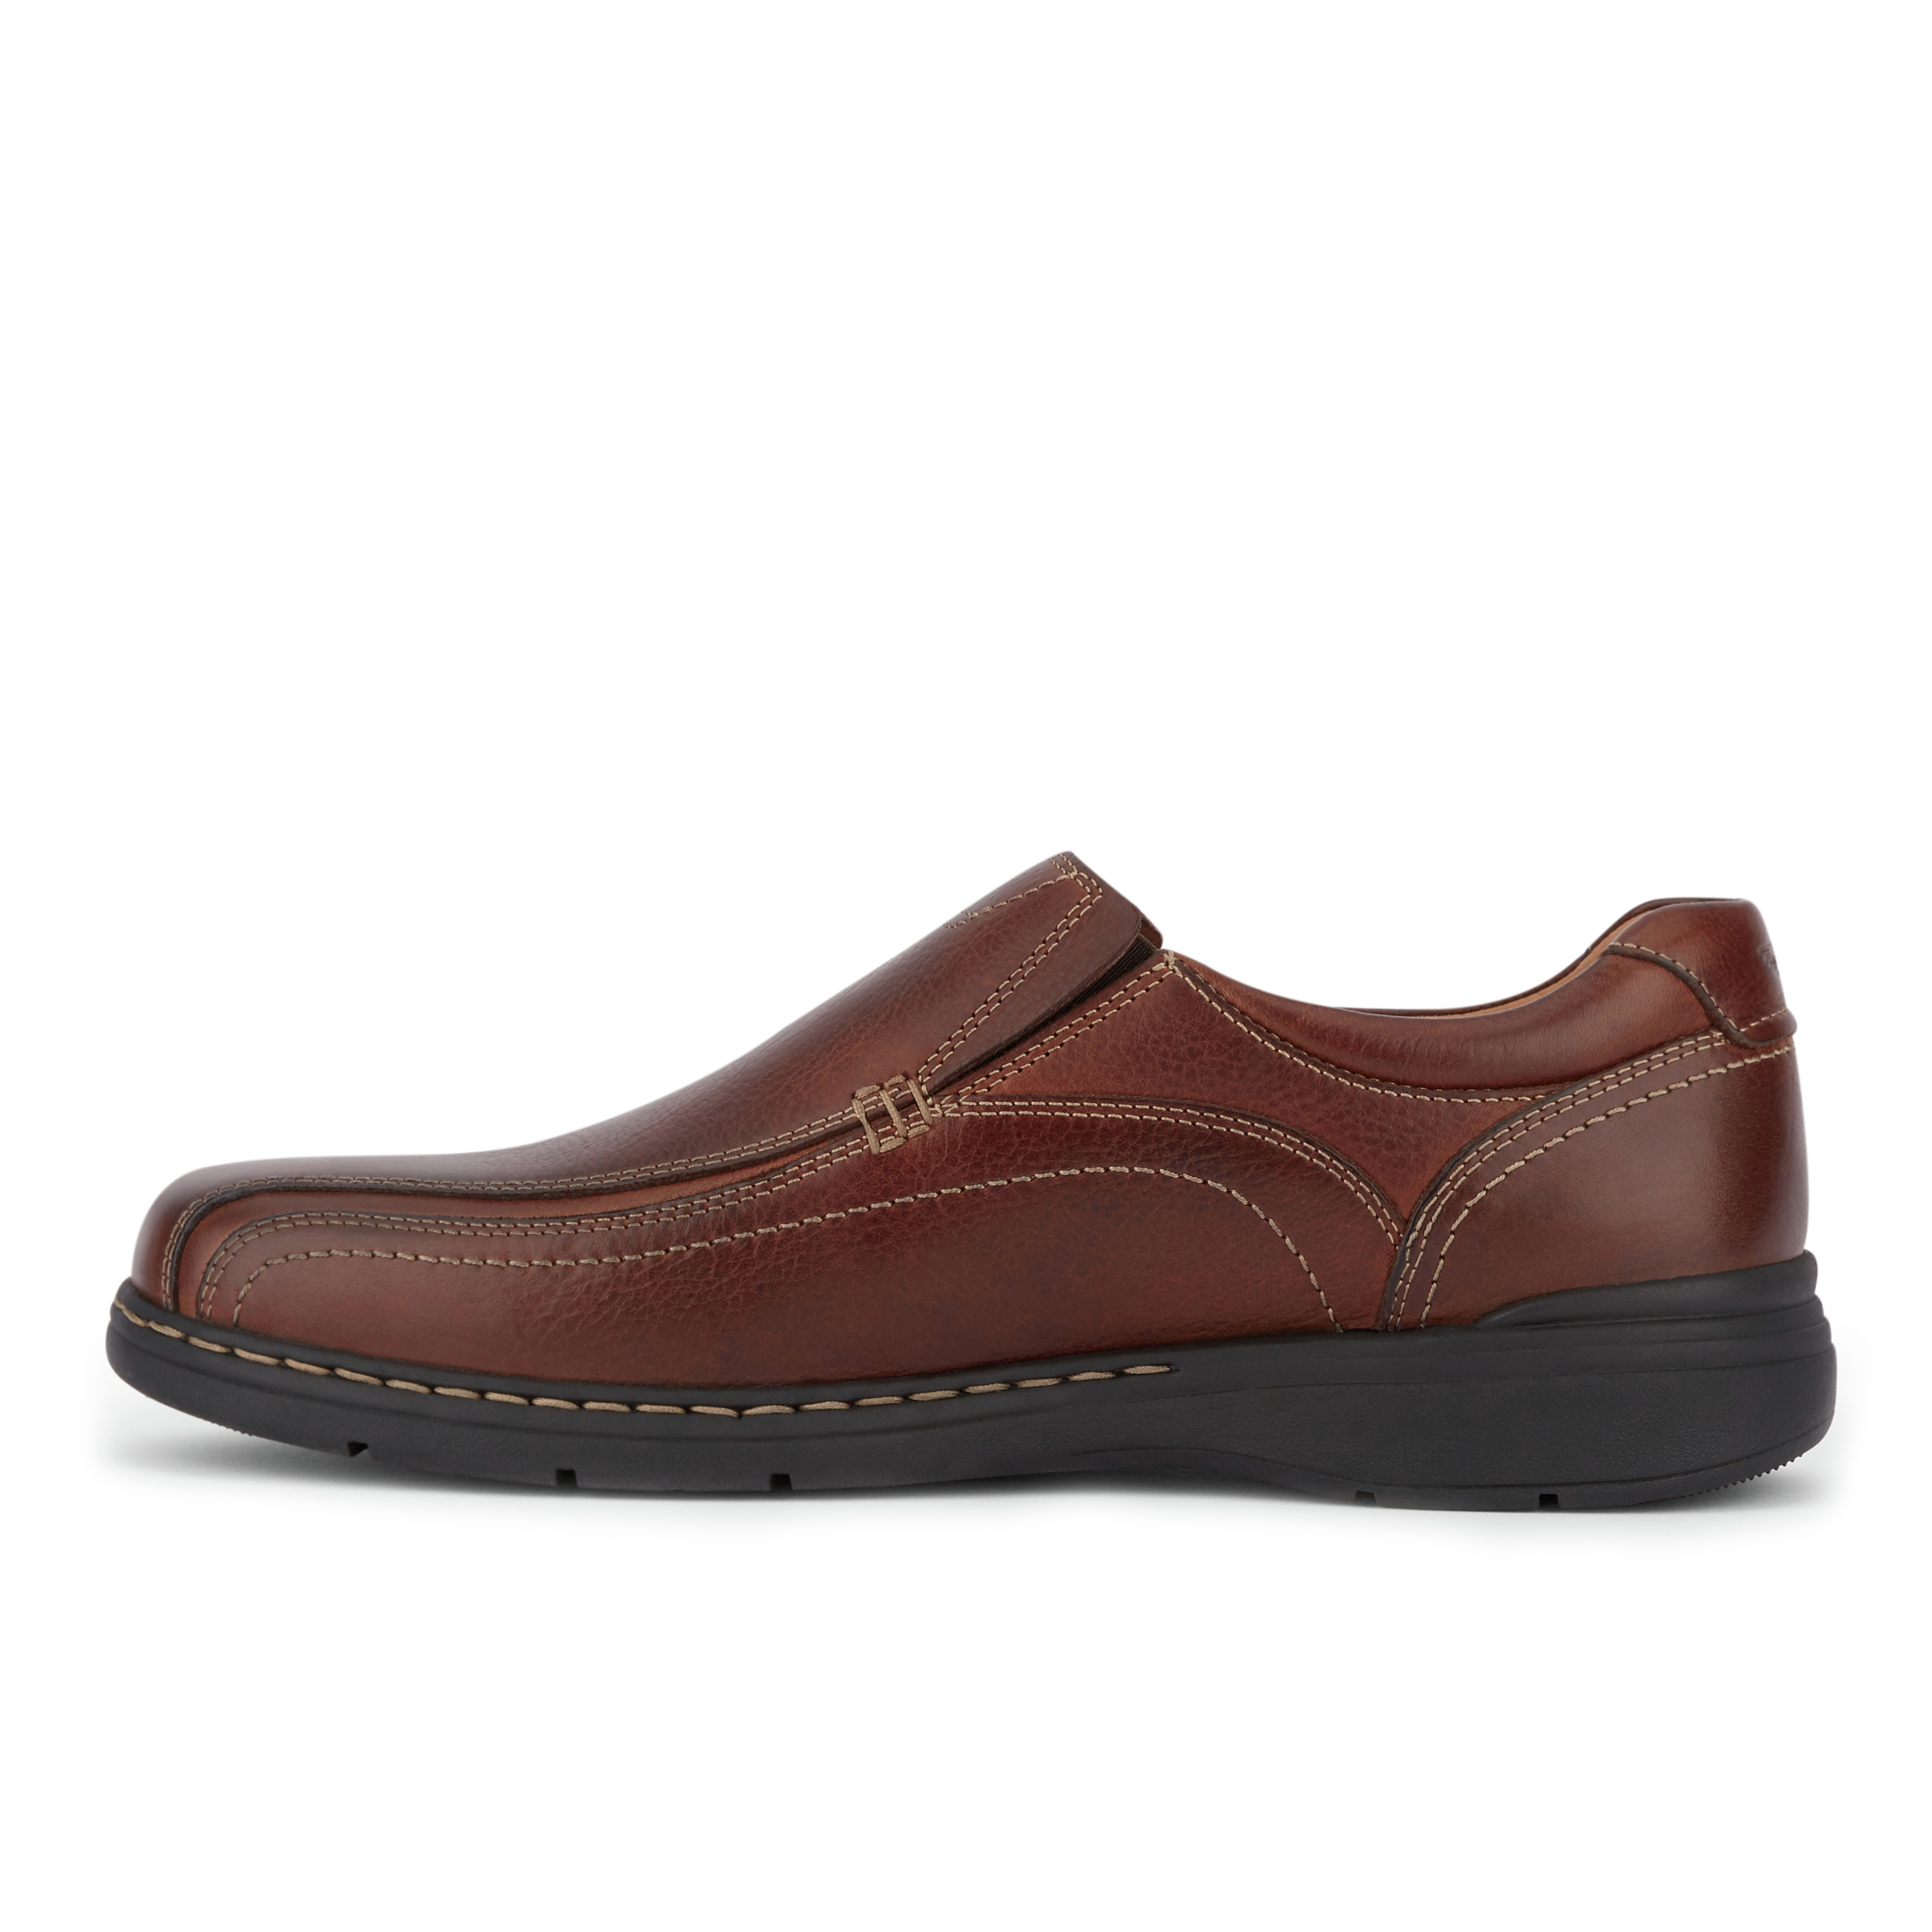 Dockers-Mens-Mosley-Genuine-Leather-Dress-Casual-Slip-on-Rubber-Sole-Shoe thumbnail 17